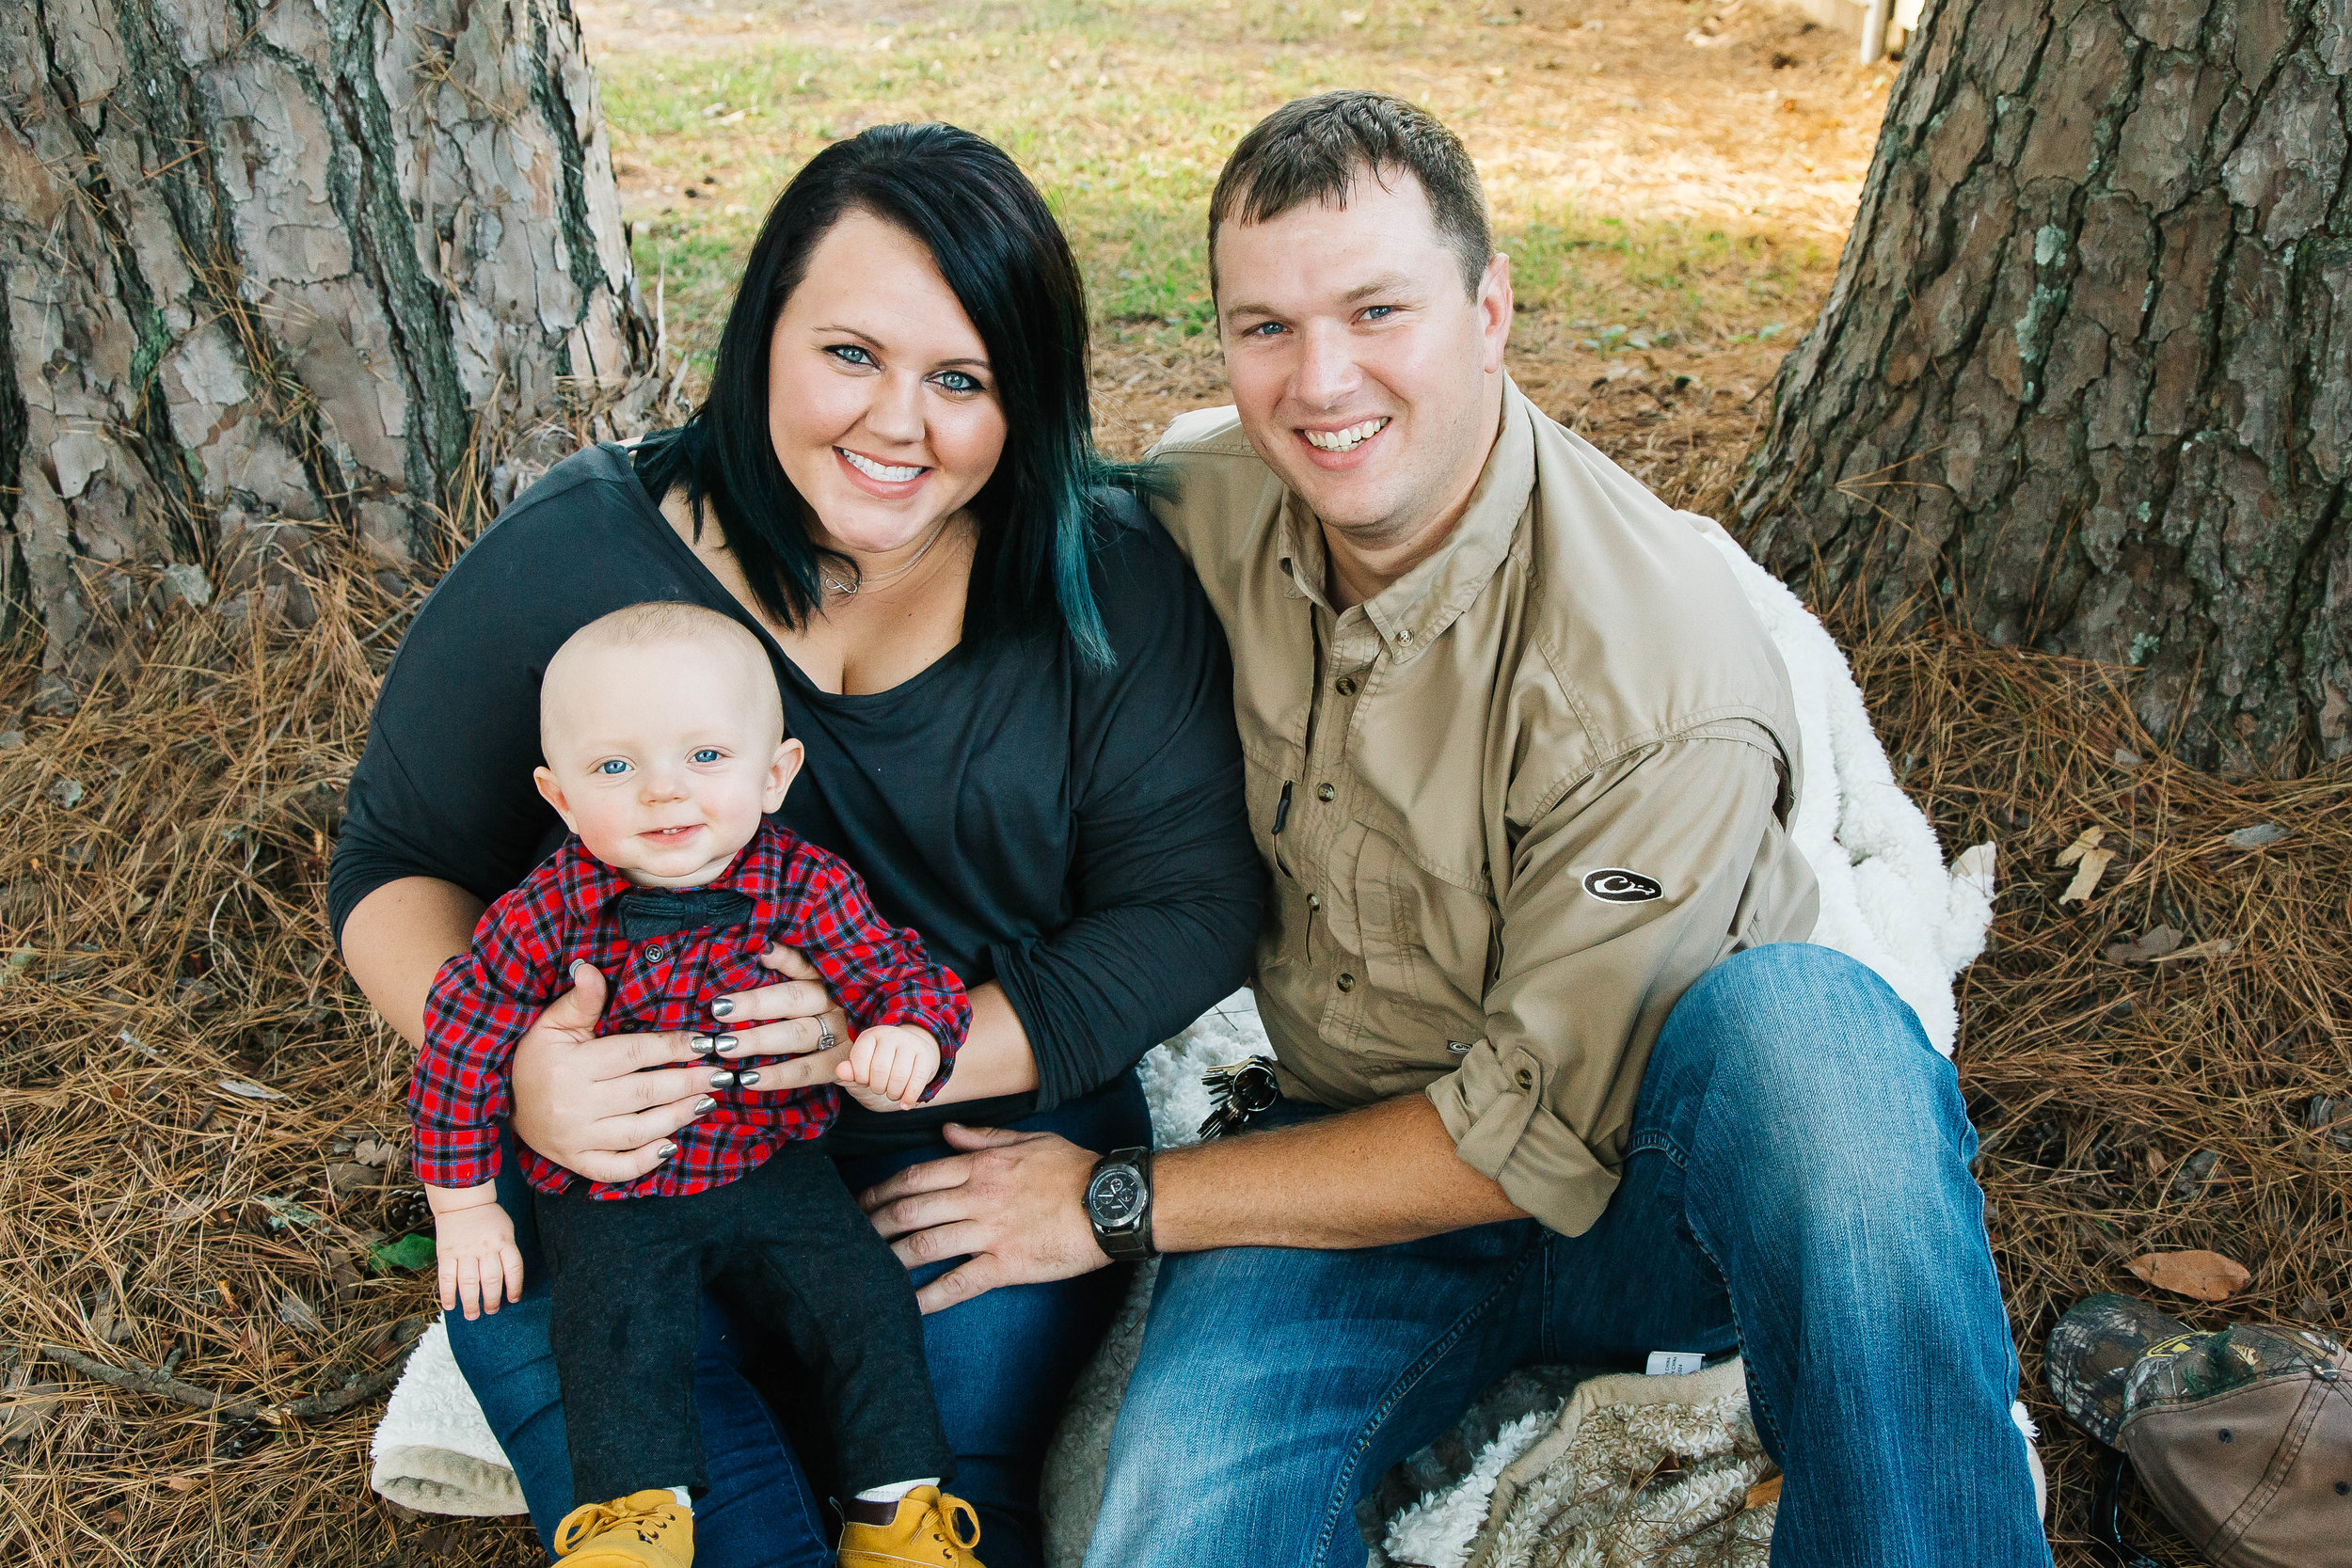 Lake Charles Family Portrait Photography